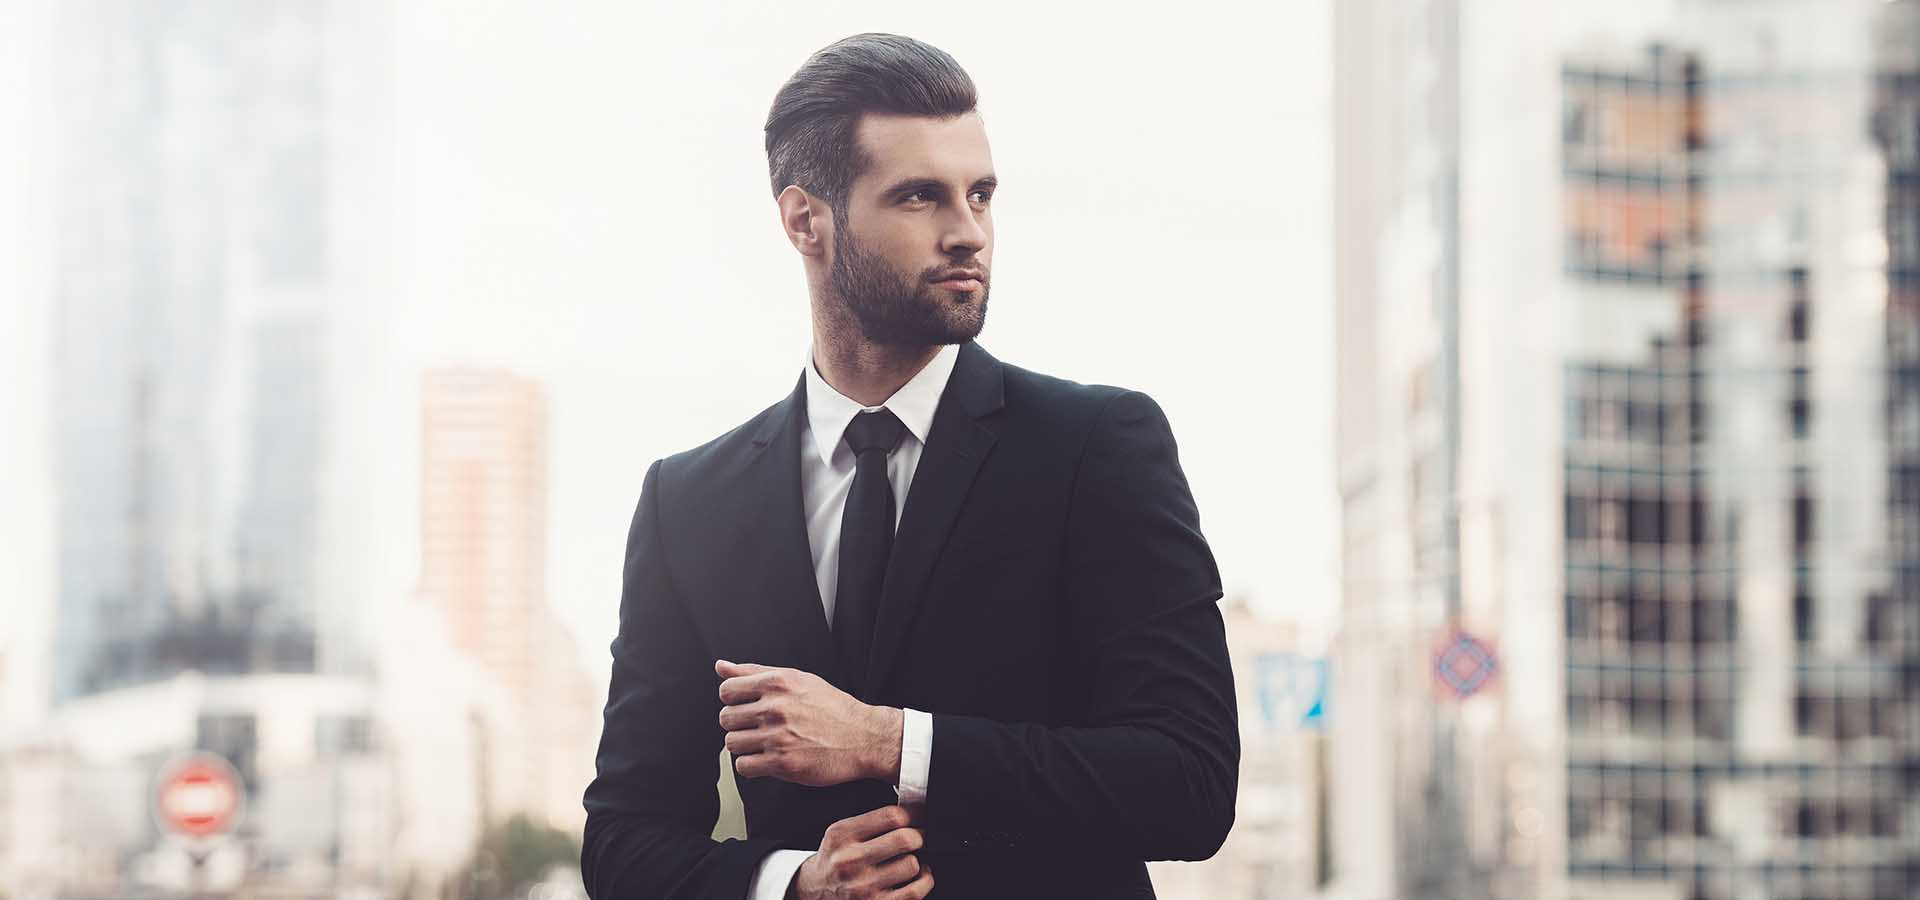 Modern businessman. Confident young man in full suit adjusting his sleeve and looking away while standing outdoors with cityscape in the background.